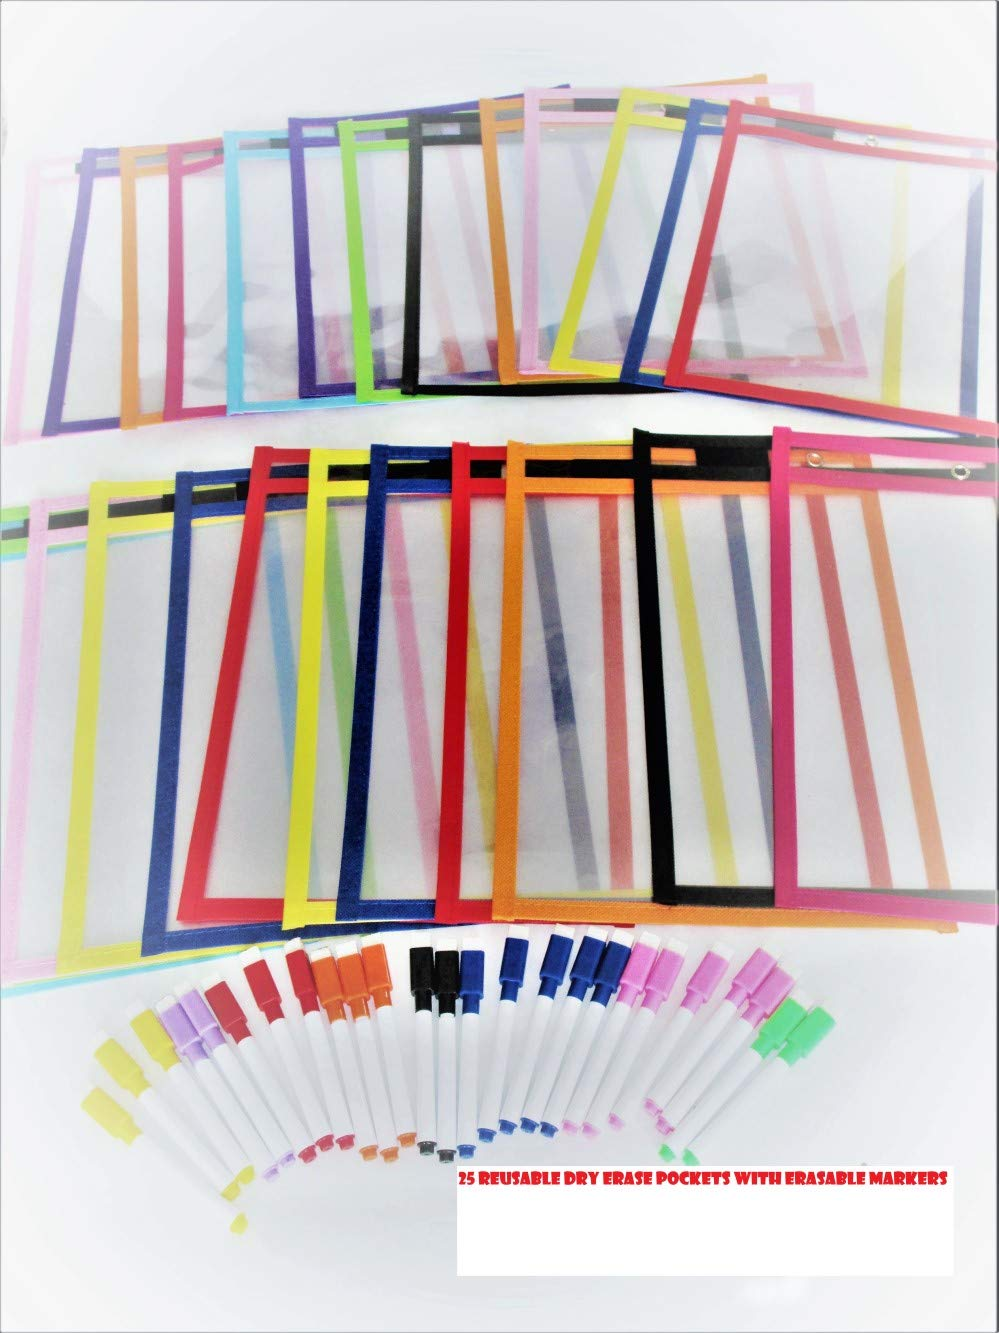 Reusable Dry-Erase pockets 25 pack with 25 Erasable Markers (25) by ZM777 (Image #4)